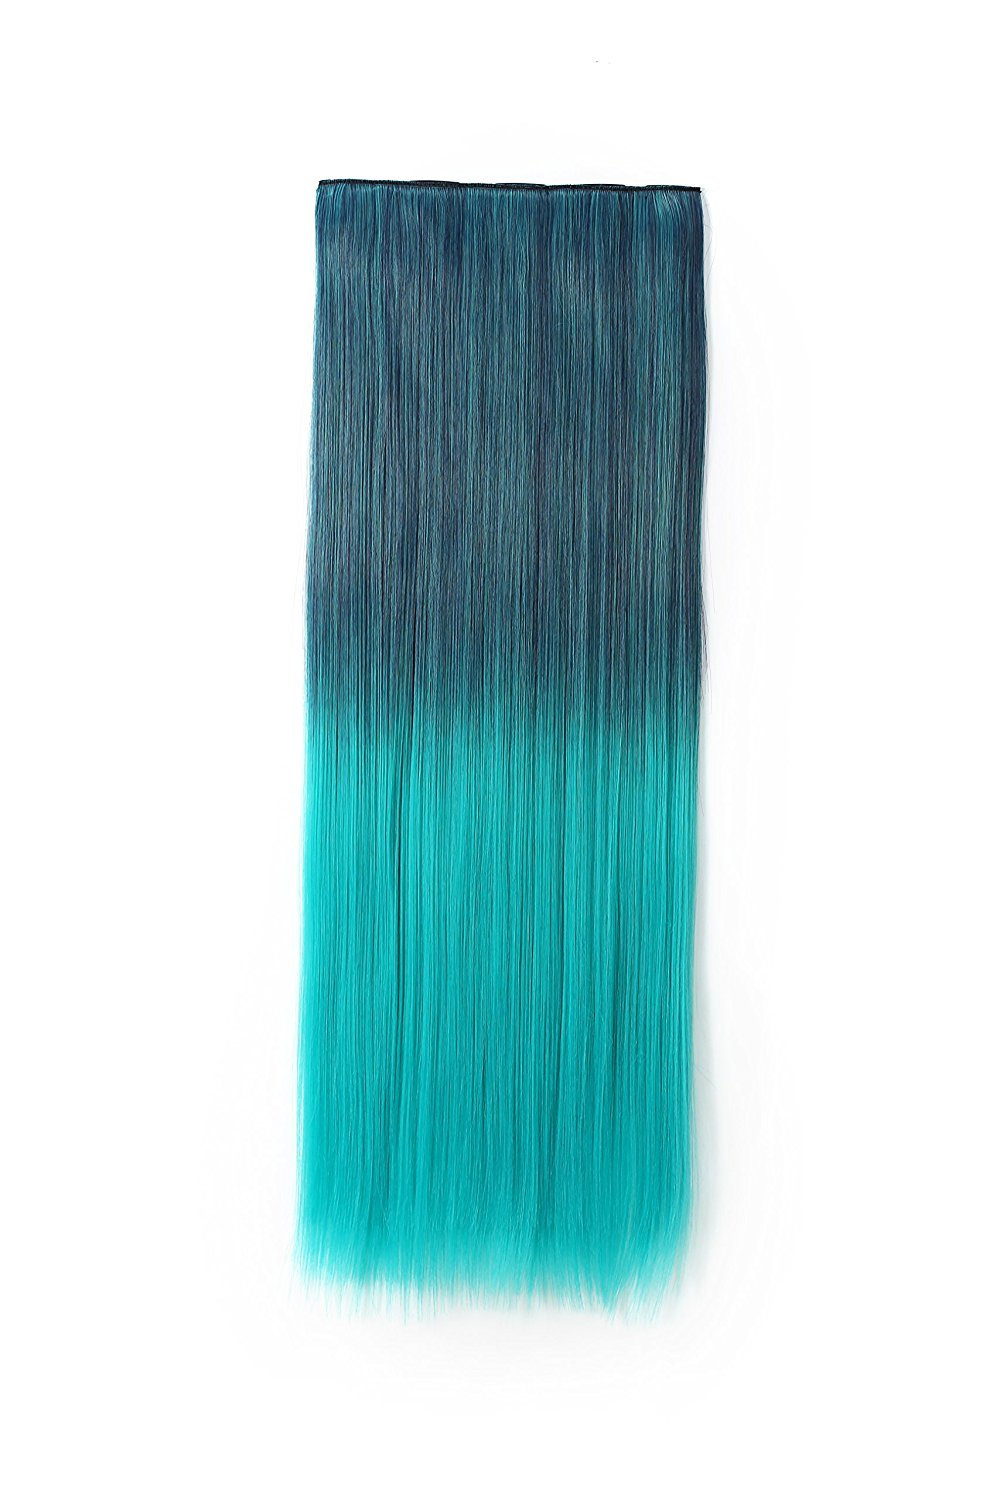 "OneDor? 24"" Straight 